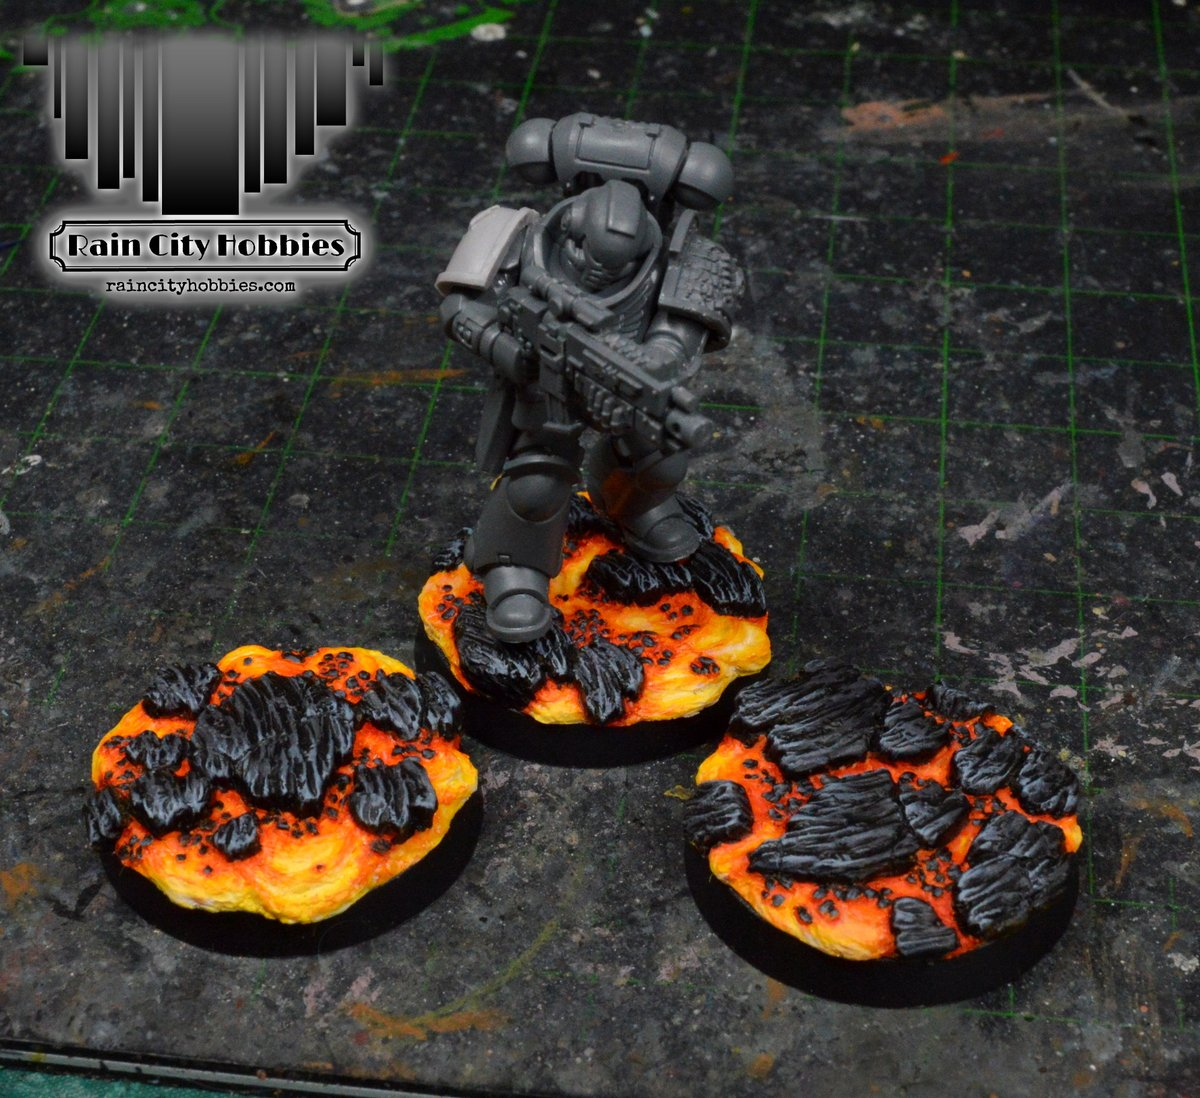 Here are some more lava bases I've been working on! They're coming along nicely, you can find them here: https://t.co/2voXtufzDN  #minipainting #miniatures #warmongers  #miniaturepainting #Warhammer #40k #warhammer40k #wh40k #ageofsigmar #aos https://t.co/nMI2eGM3Gy